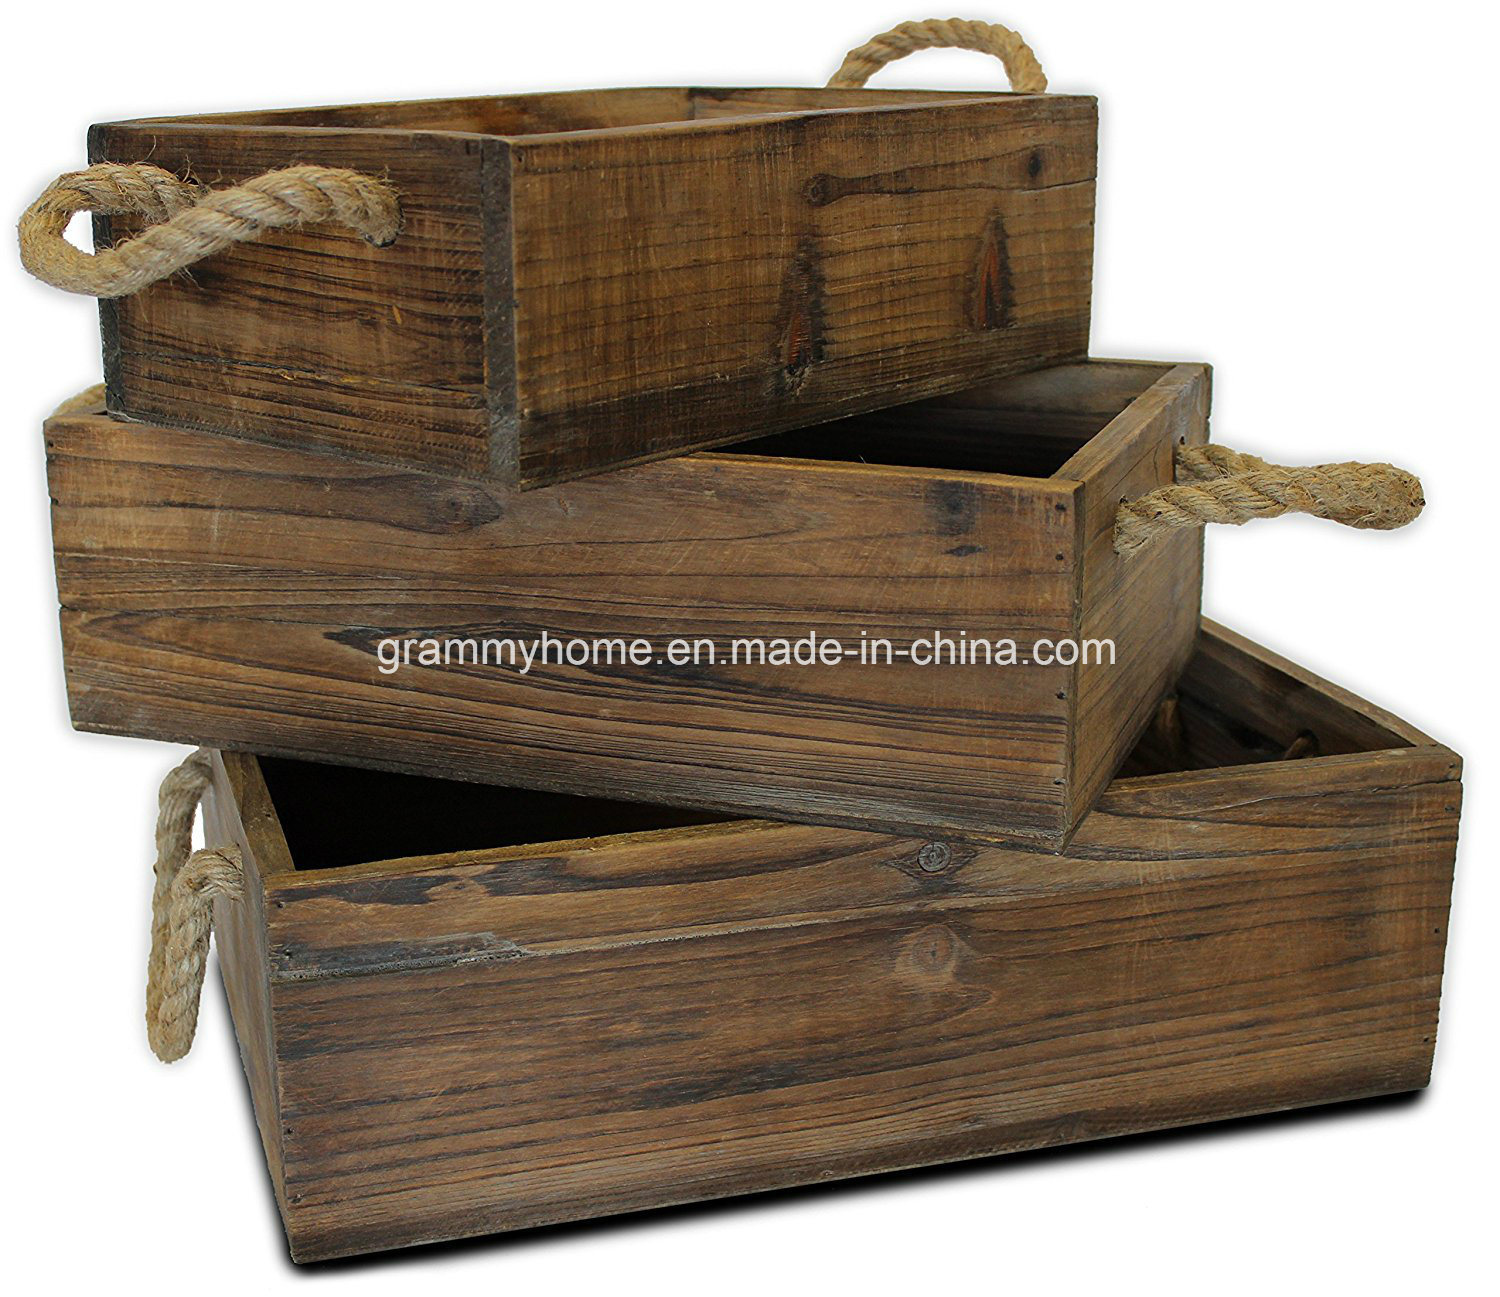 Hot Item Rustic Vintage Wooden Flower Planter Box With Rope Handles